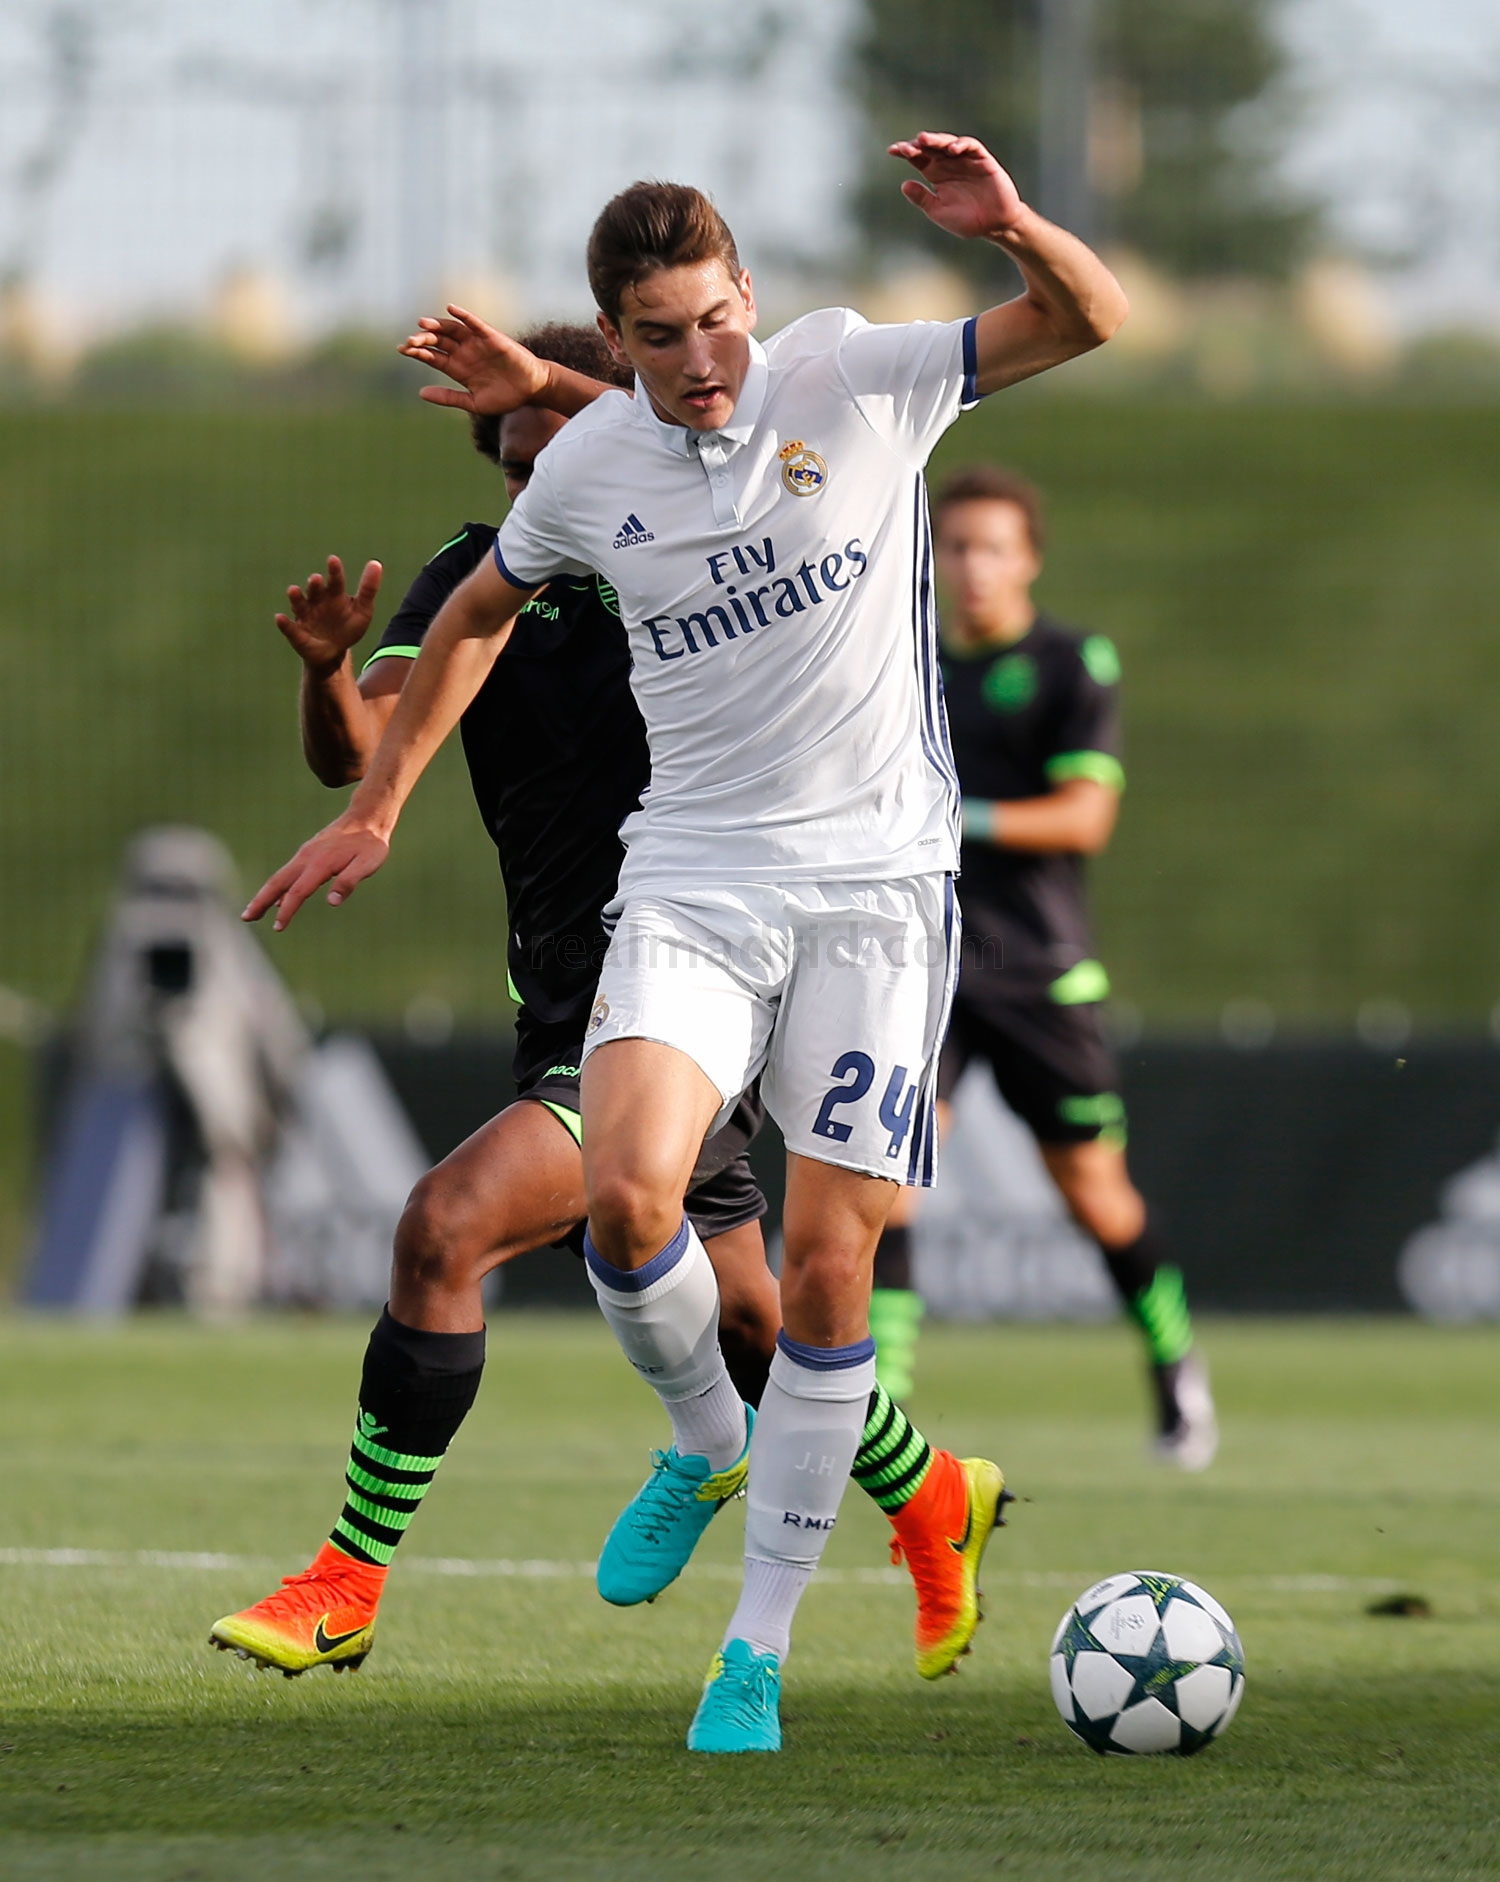 Real Madrid - Juvenil A - Sporting de Portugal - 14-09-2016